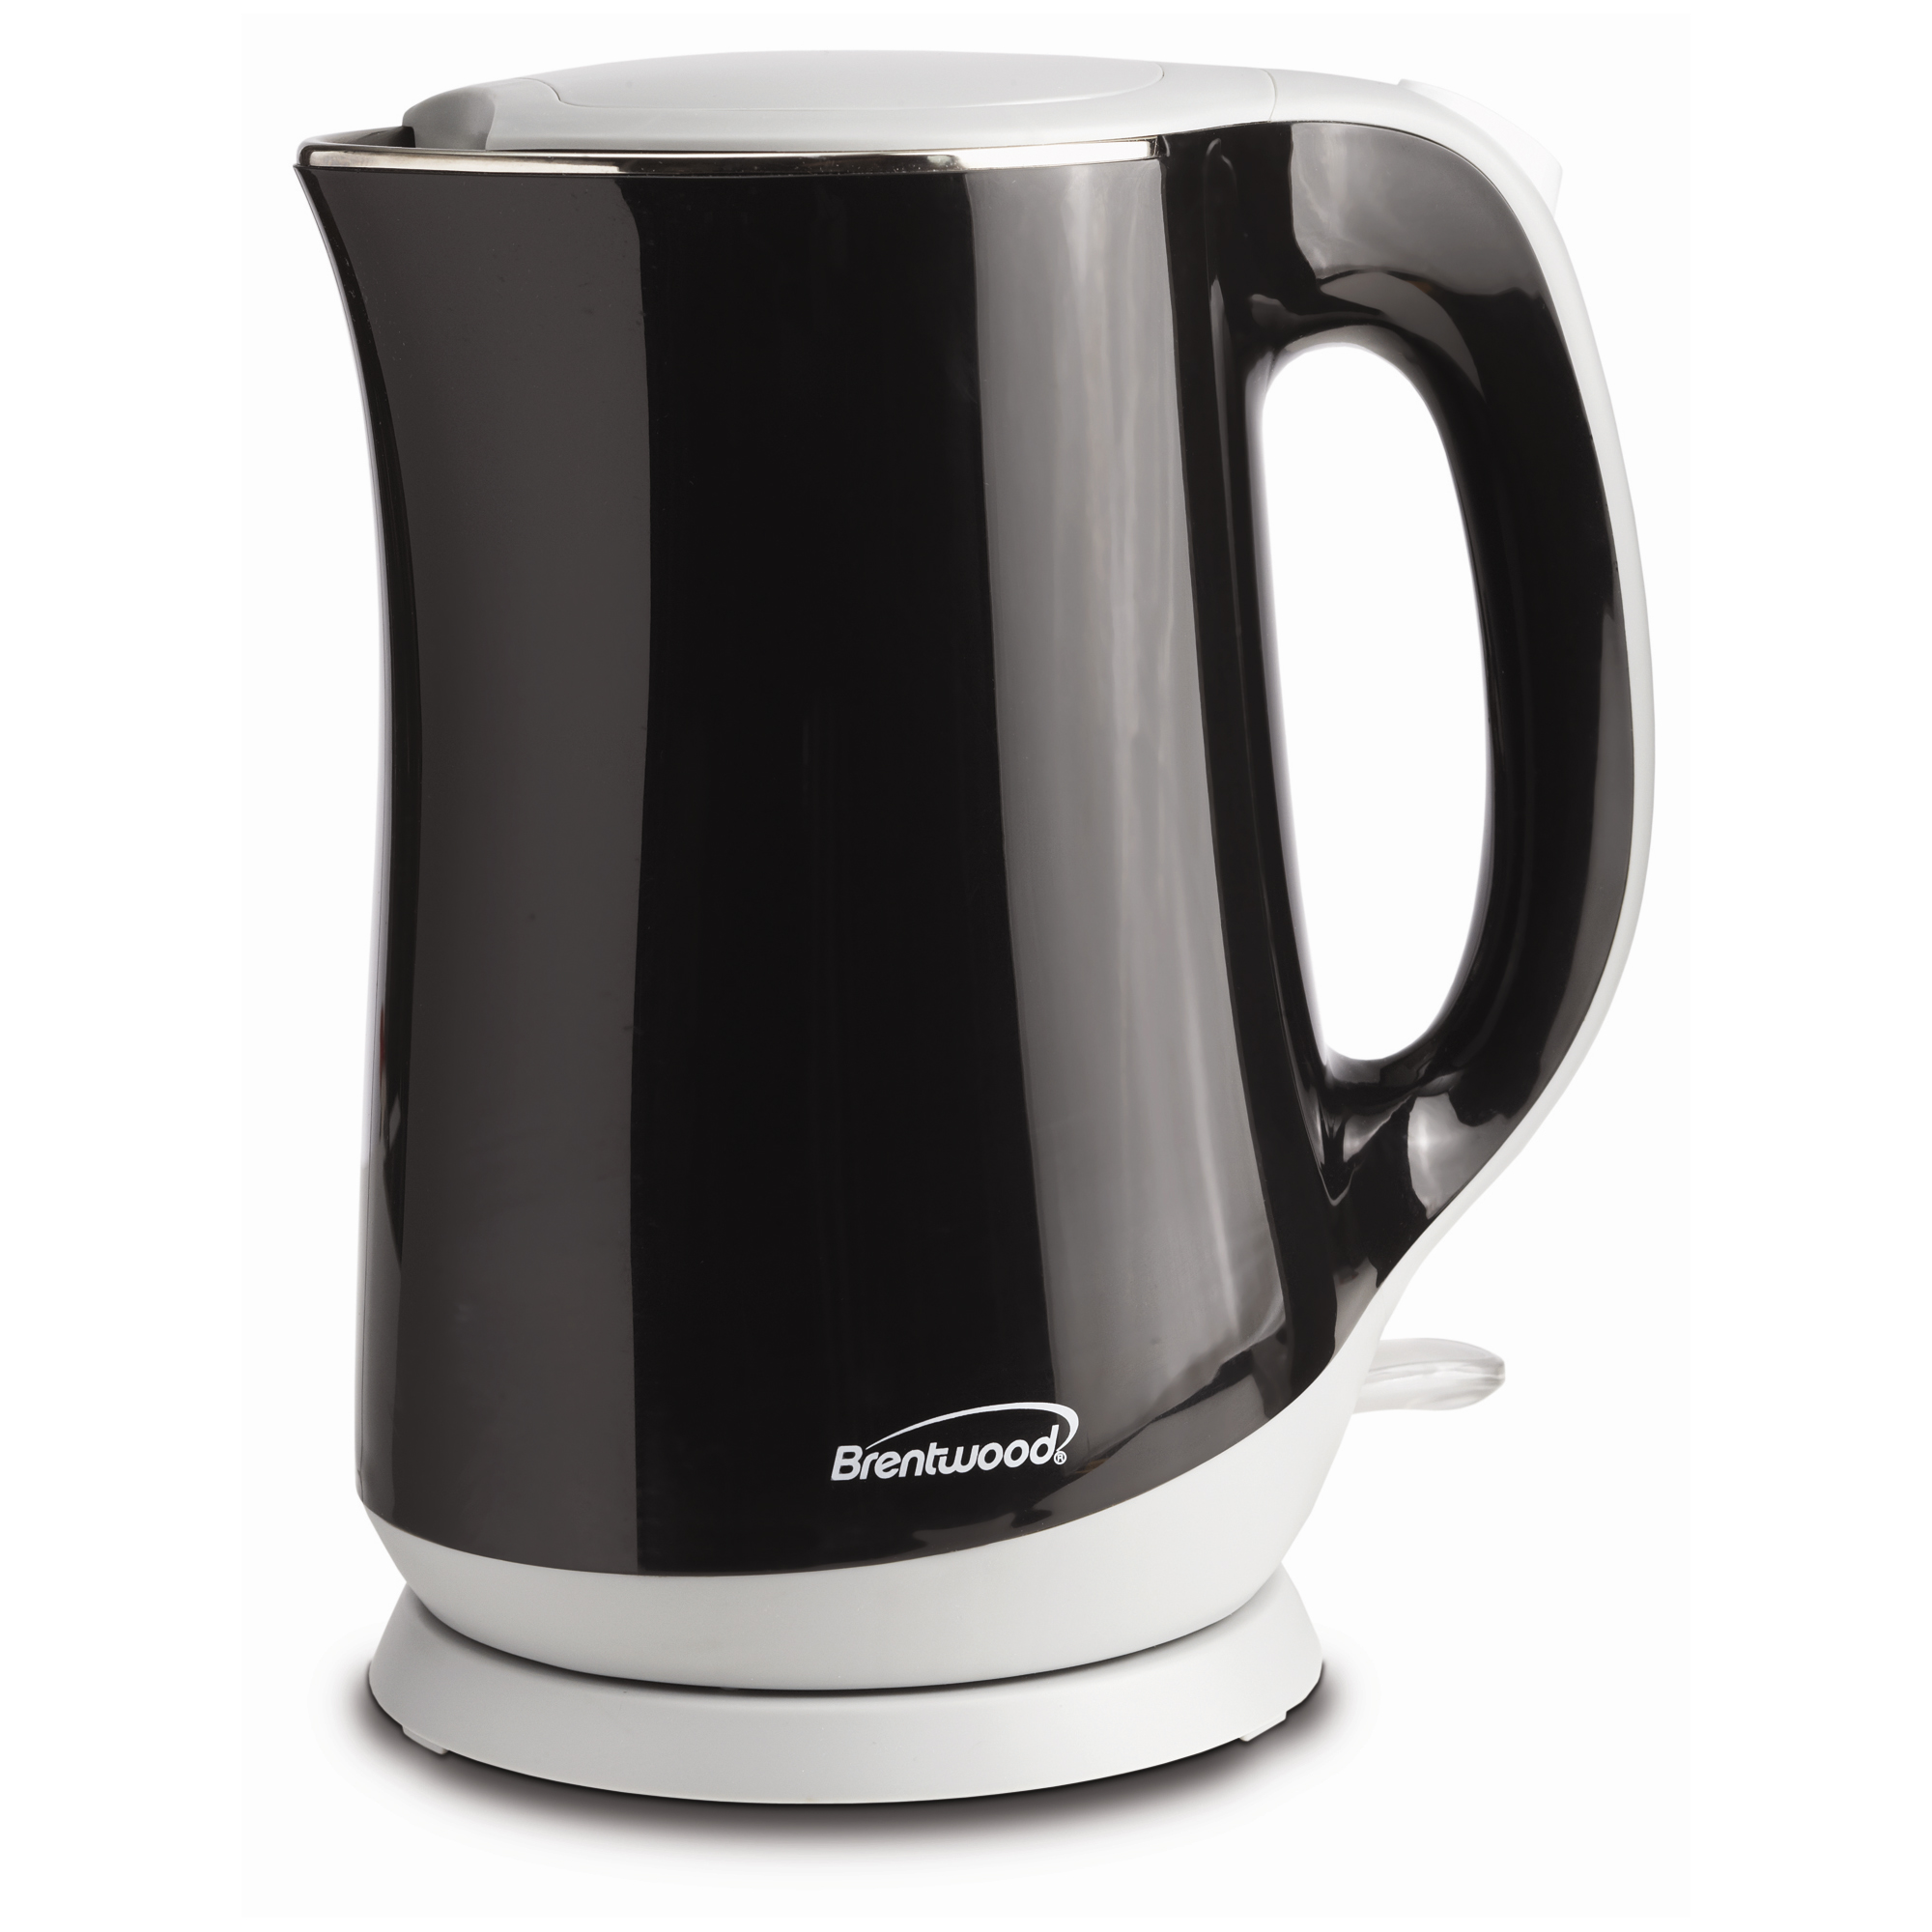 Brentwood 1.3 Liter Cool Touch Electric Kettle - Black